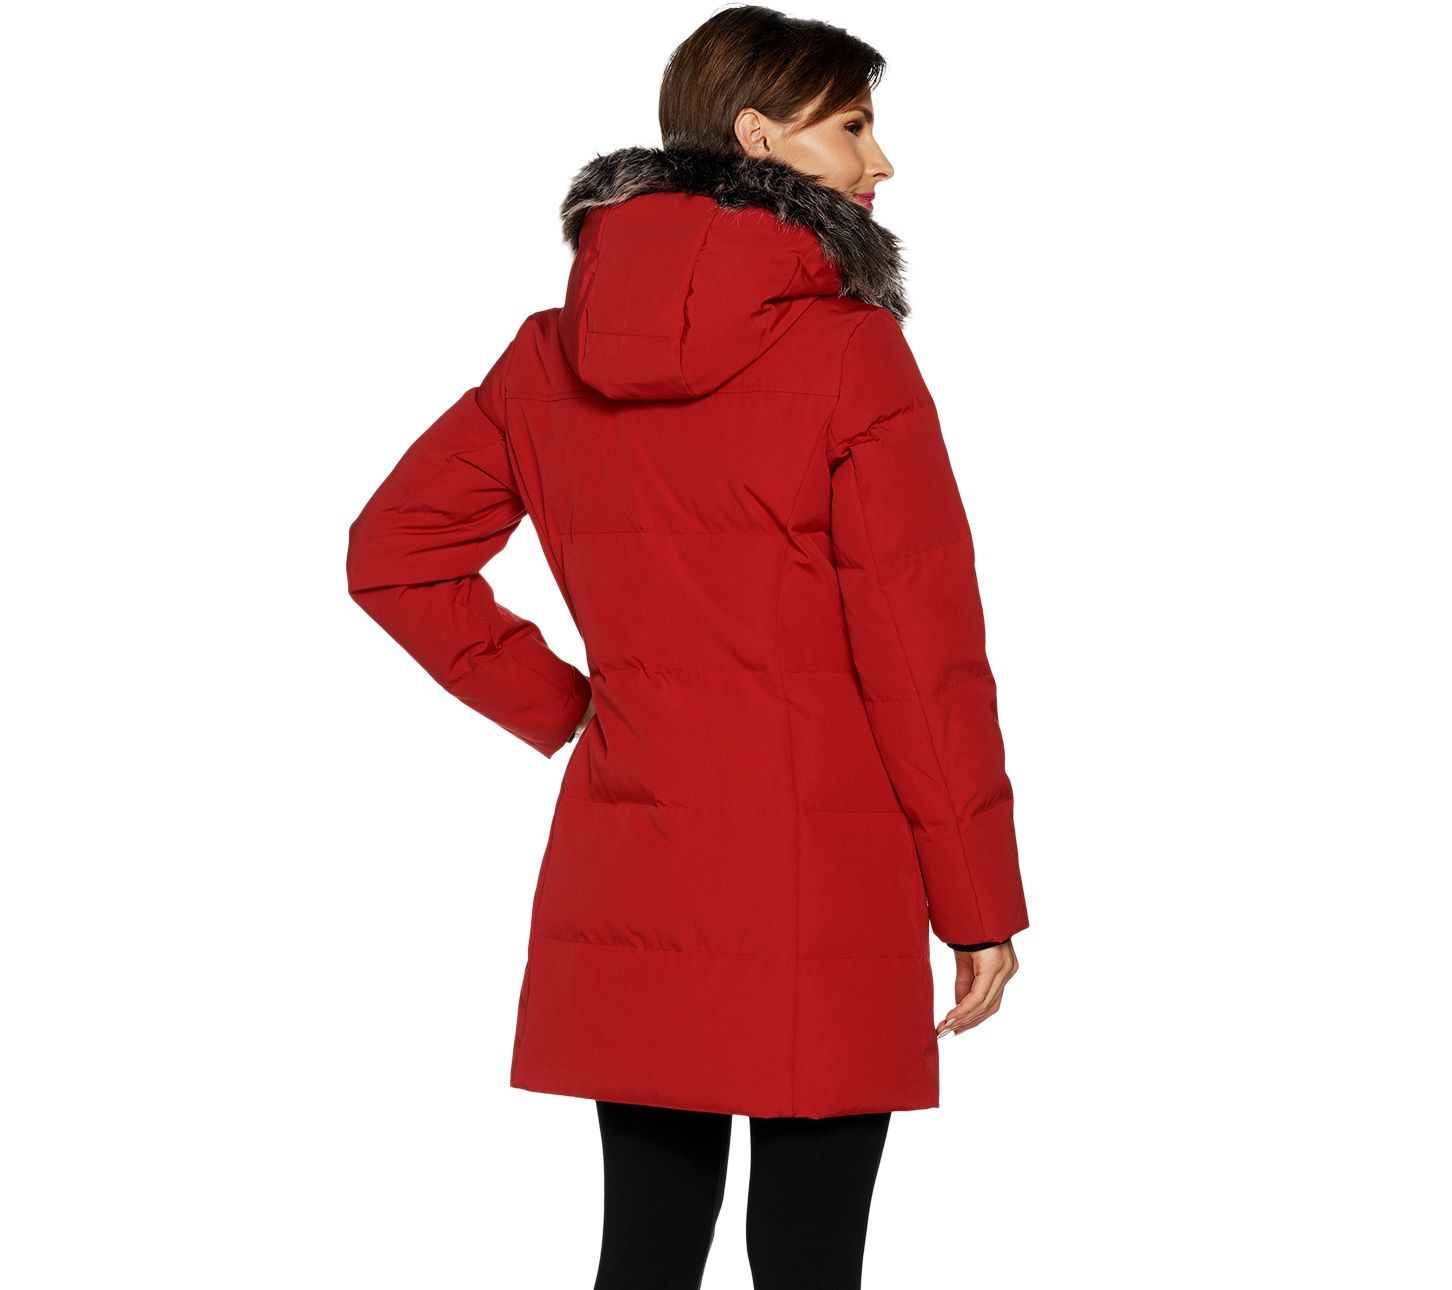 b687a26154 Arctic Expedition Women s Quilted Down Coat - Page 1 — QVC.com